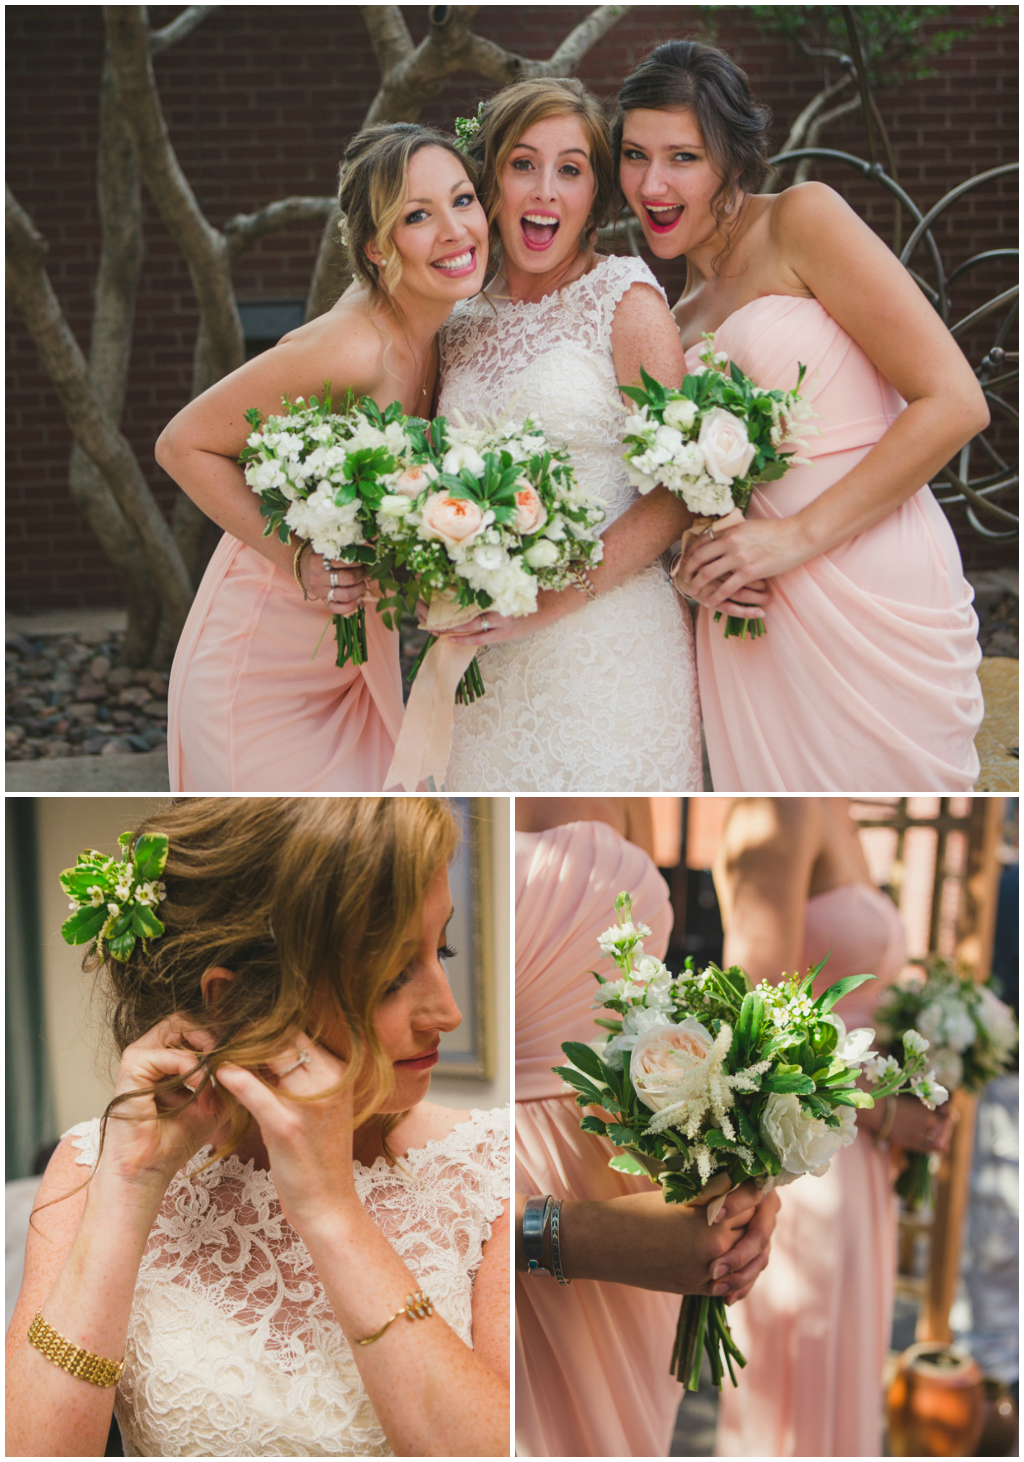 Peach and white bridesmaid bouquets. Jessica Ormond Events - Abilene and Lubbock Texas boutique wedding florist and planner. Mia Coelho Photography.